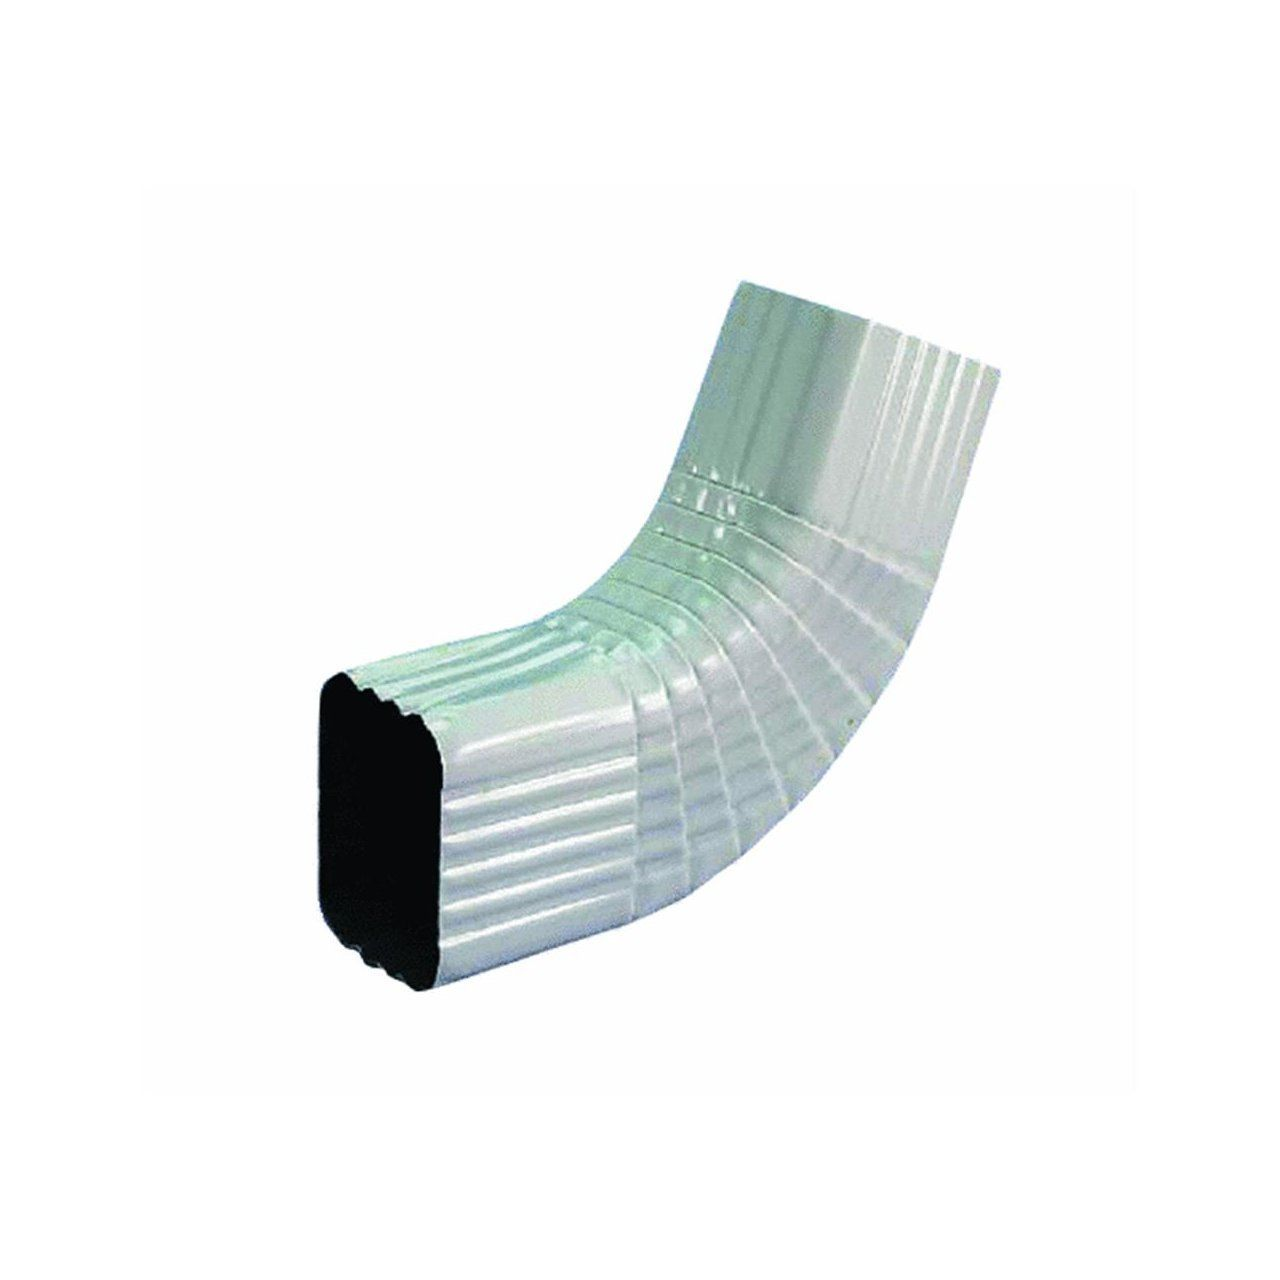 Amerimax Home Products 27065 2x3 Aluminum B Elbow White To View Further For This Item Visit The Image Cool Things To Buy Material For Sale House Exterior